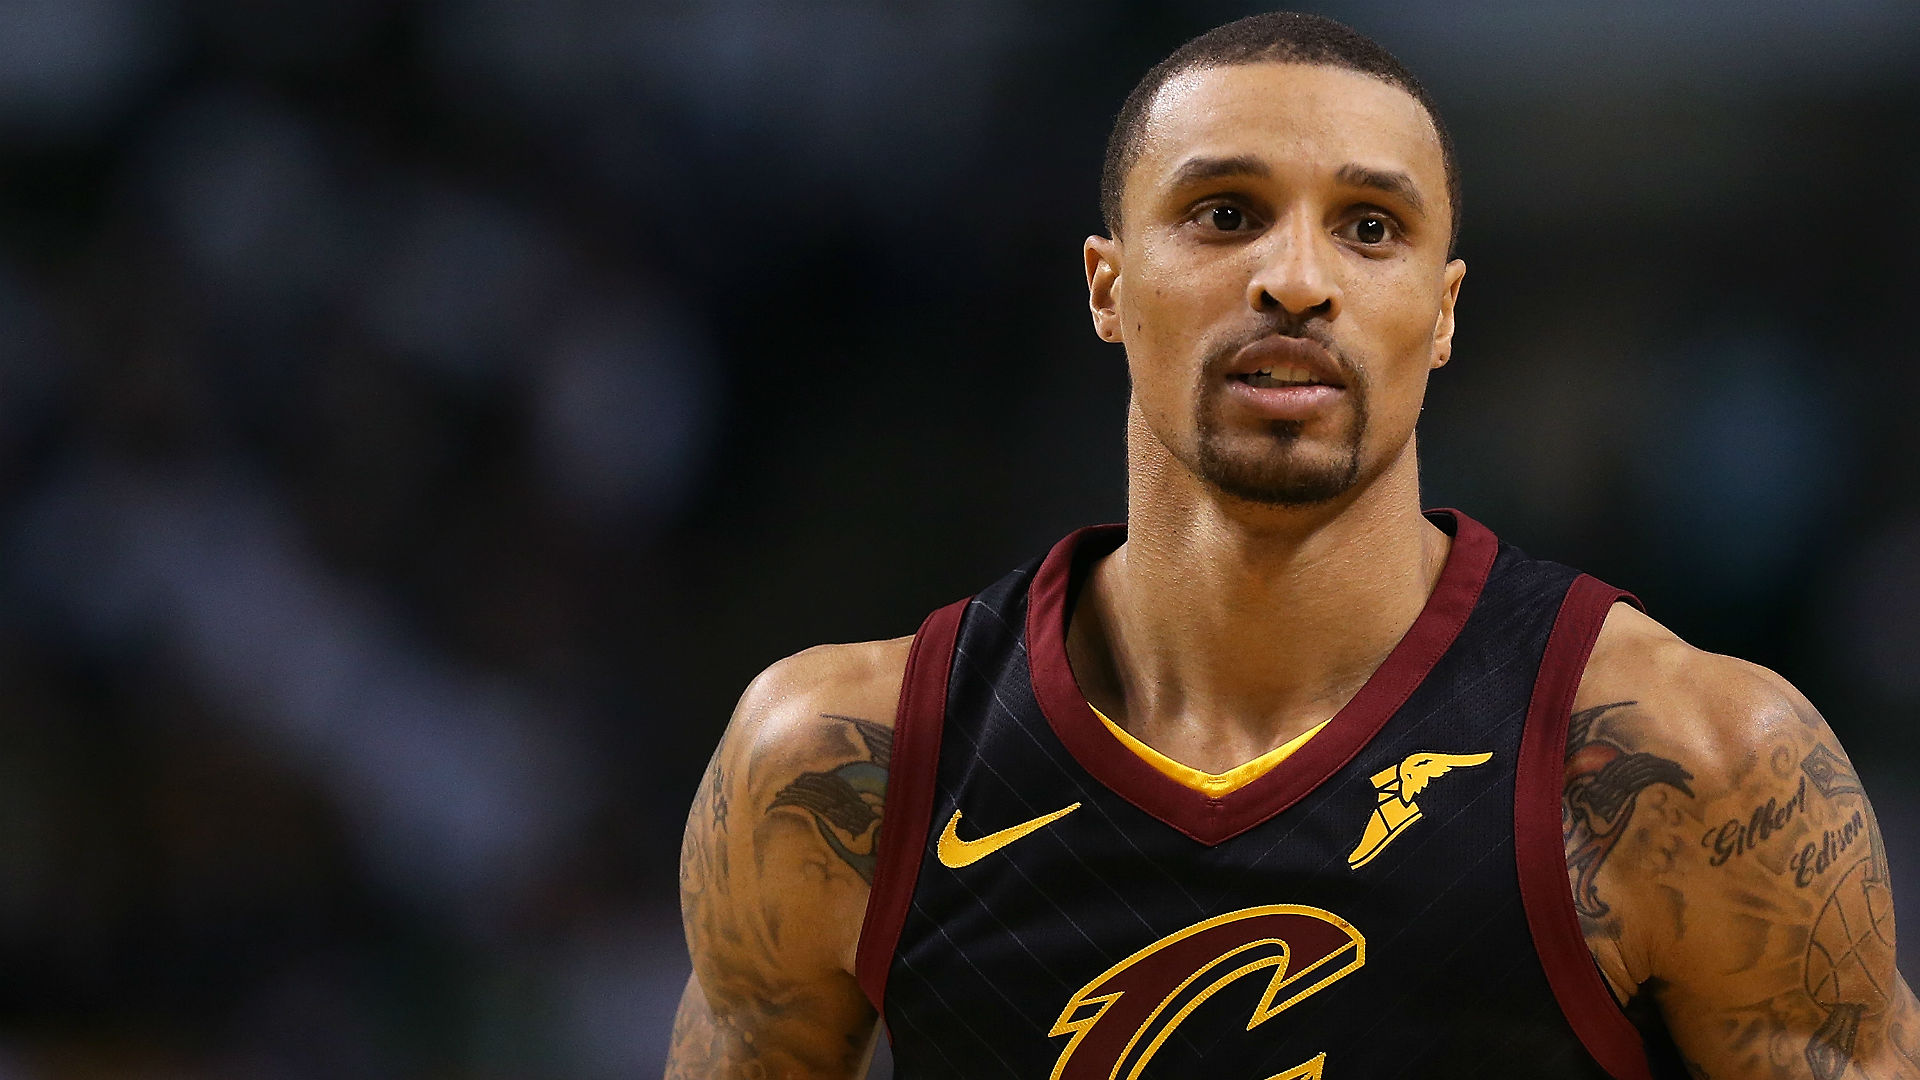 NBA trade rumors: Bucks finalizing deal to get George Hill